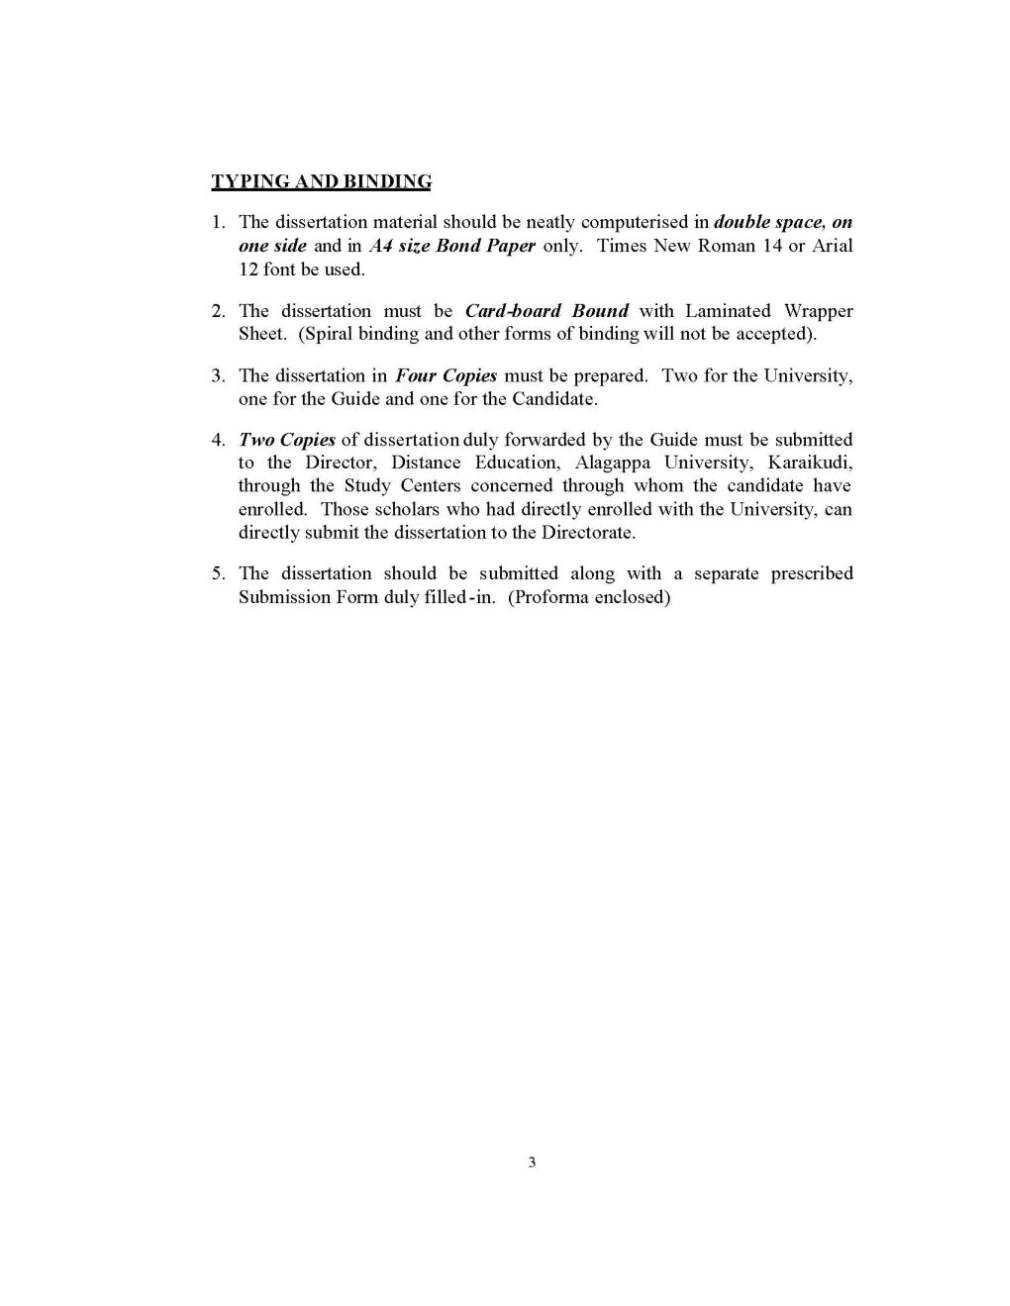 007 Essay Example Guideline For Format Of The Dissertation Report Mphil Political Dreaded Crossword Clue Full